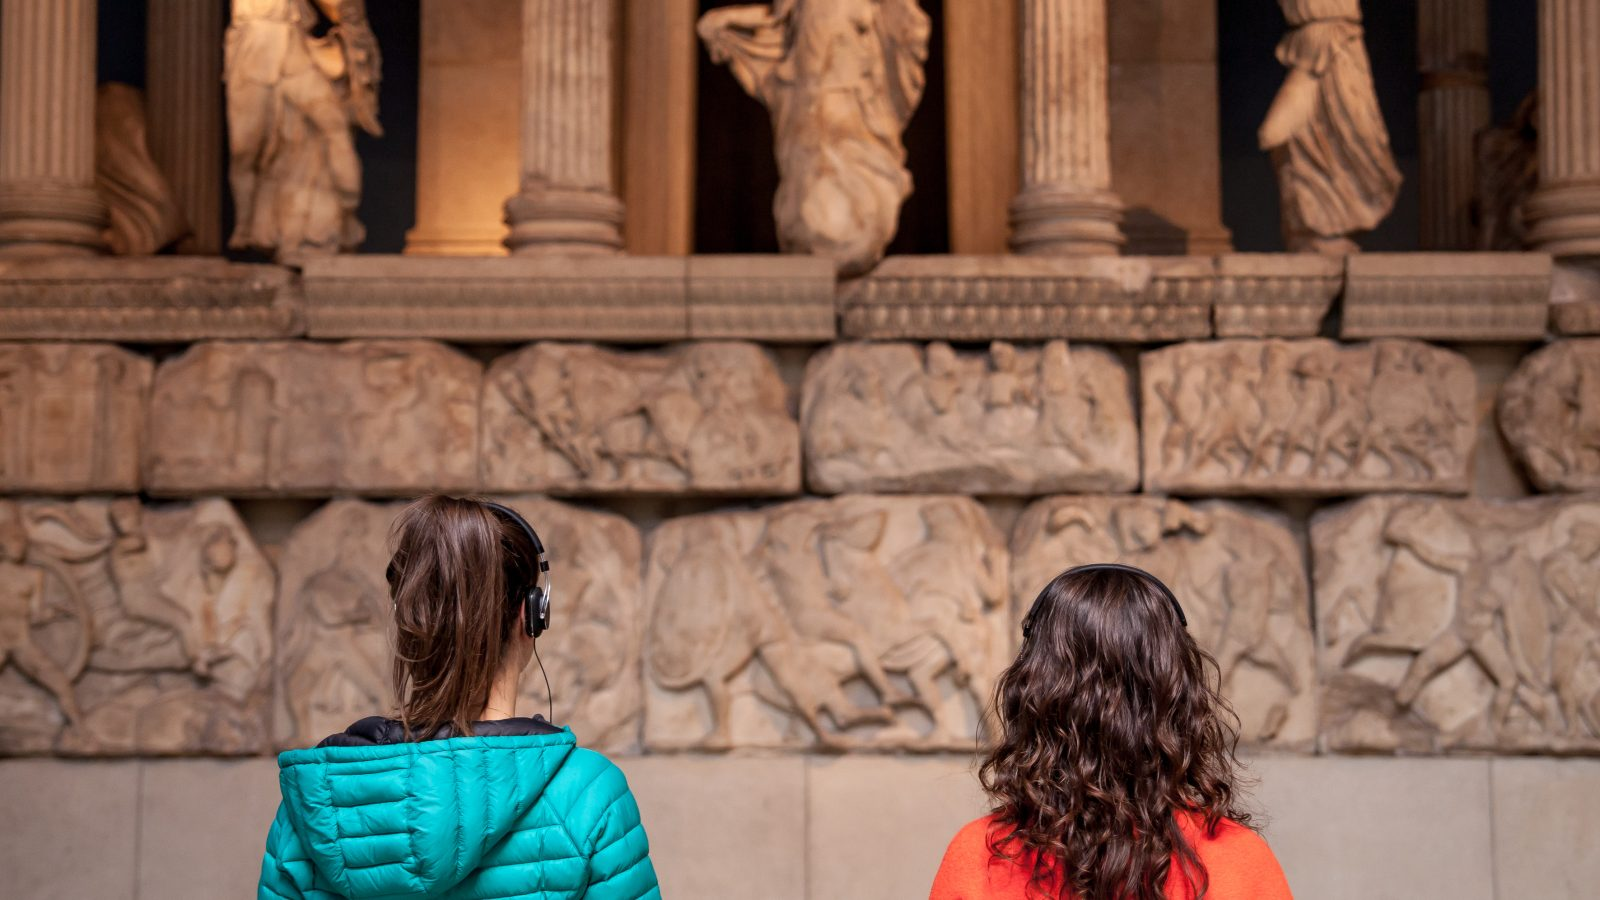 Two women wearing headphones in front of an exhibit at the British Museum.